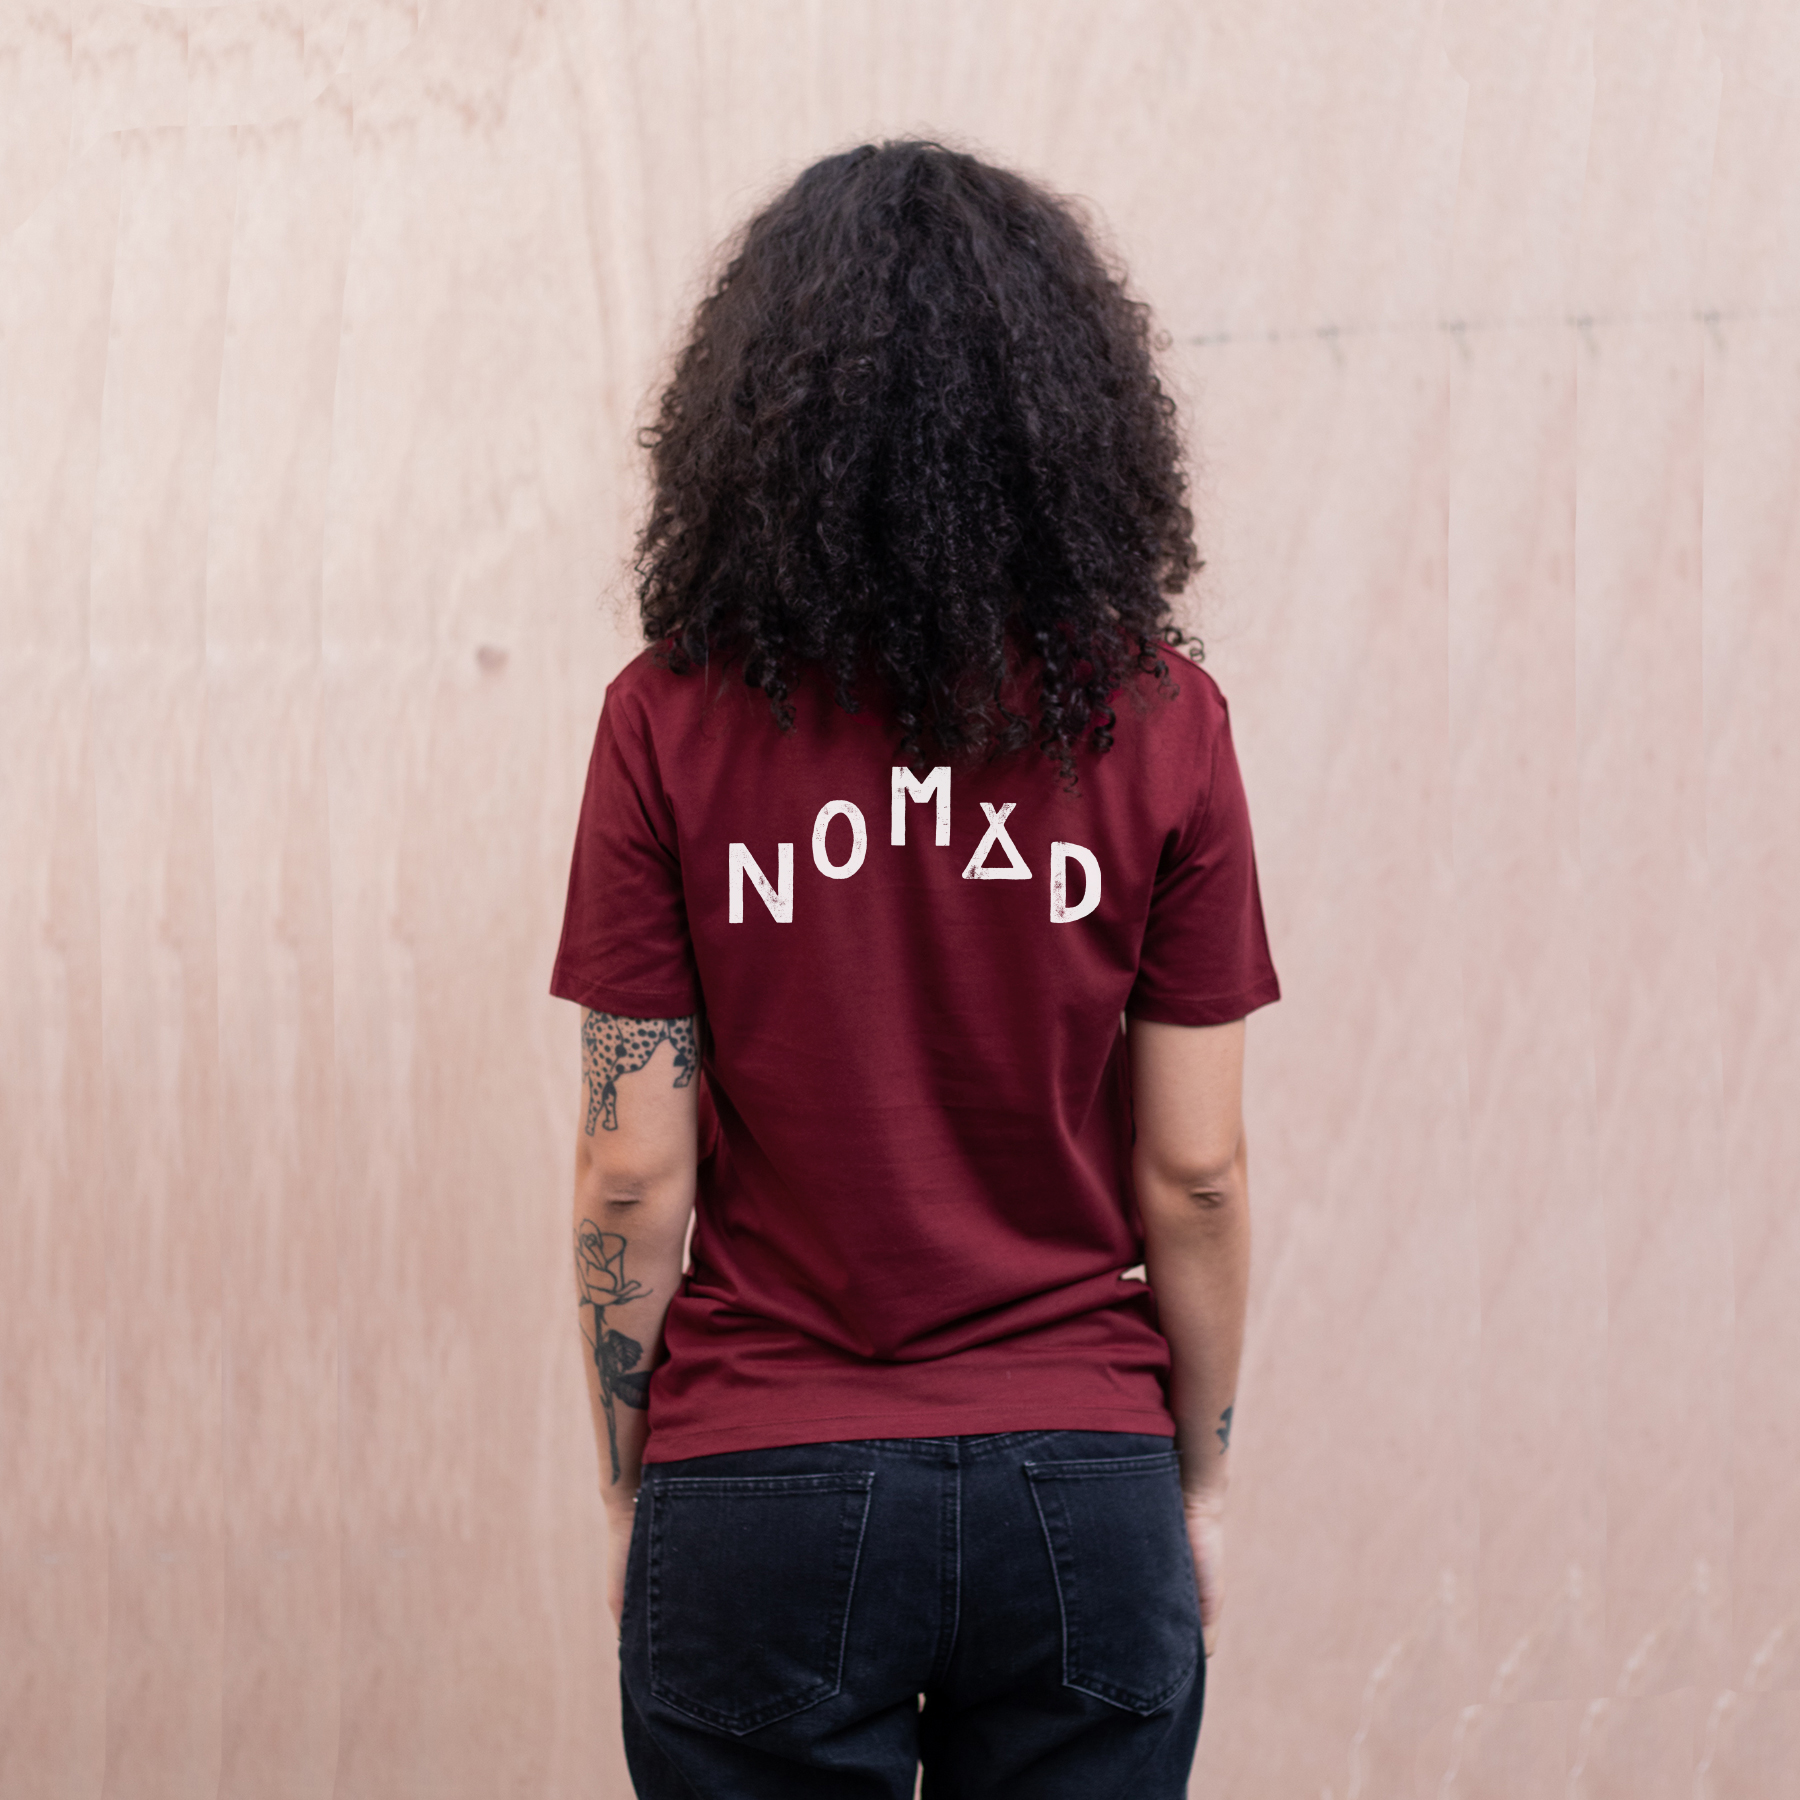 Nomad-organic-cotton-t-shirt-womens-back-The-Level-Collective.jpg